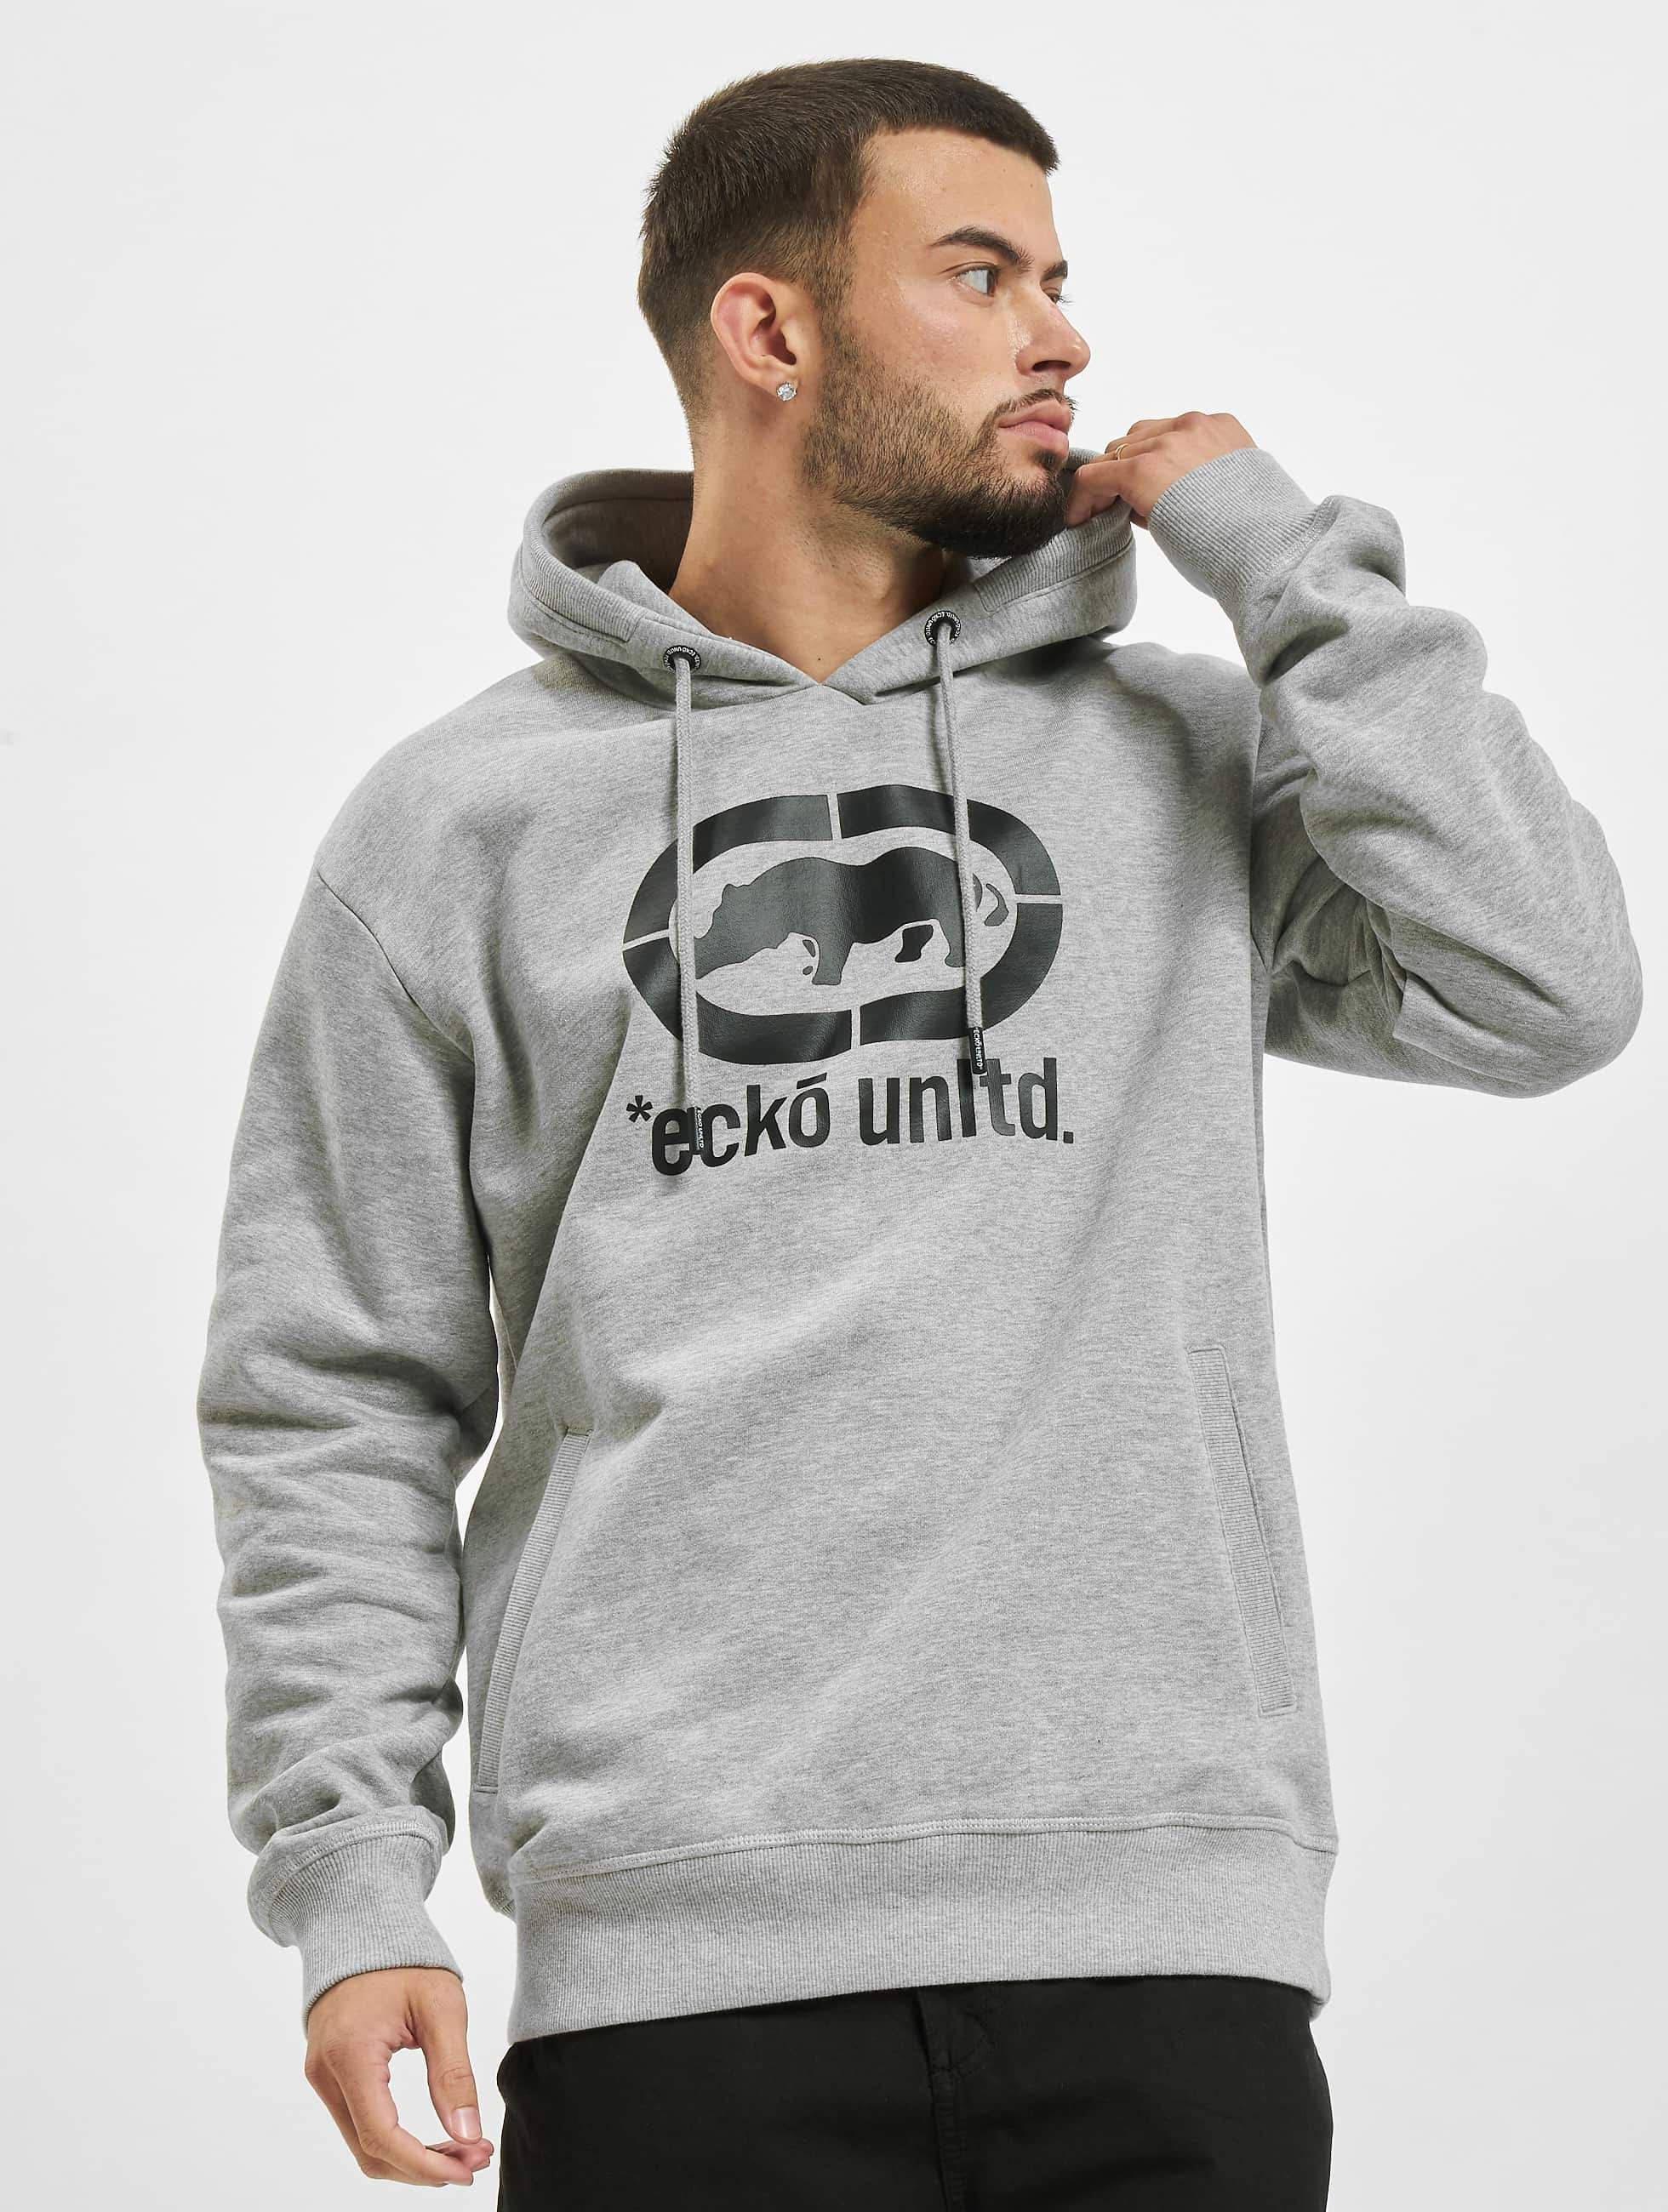 Ecko Unltd. / Hoodie Base in grey L